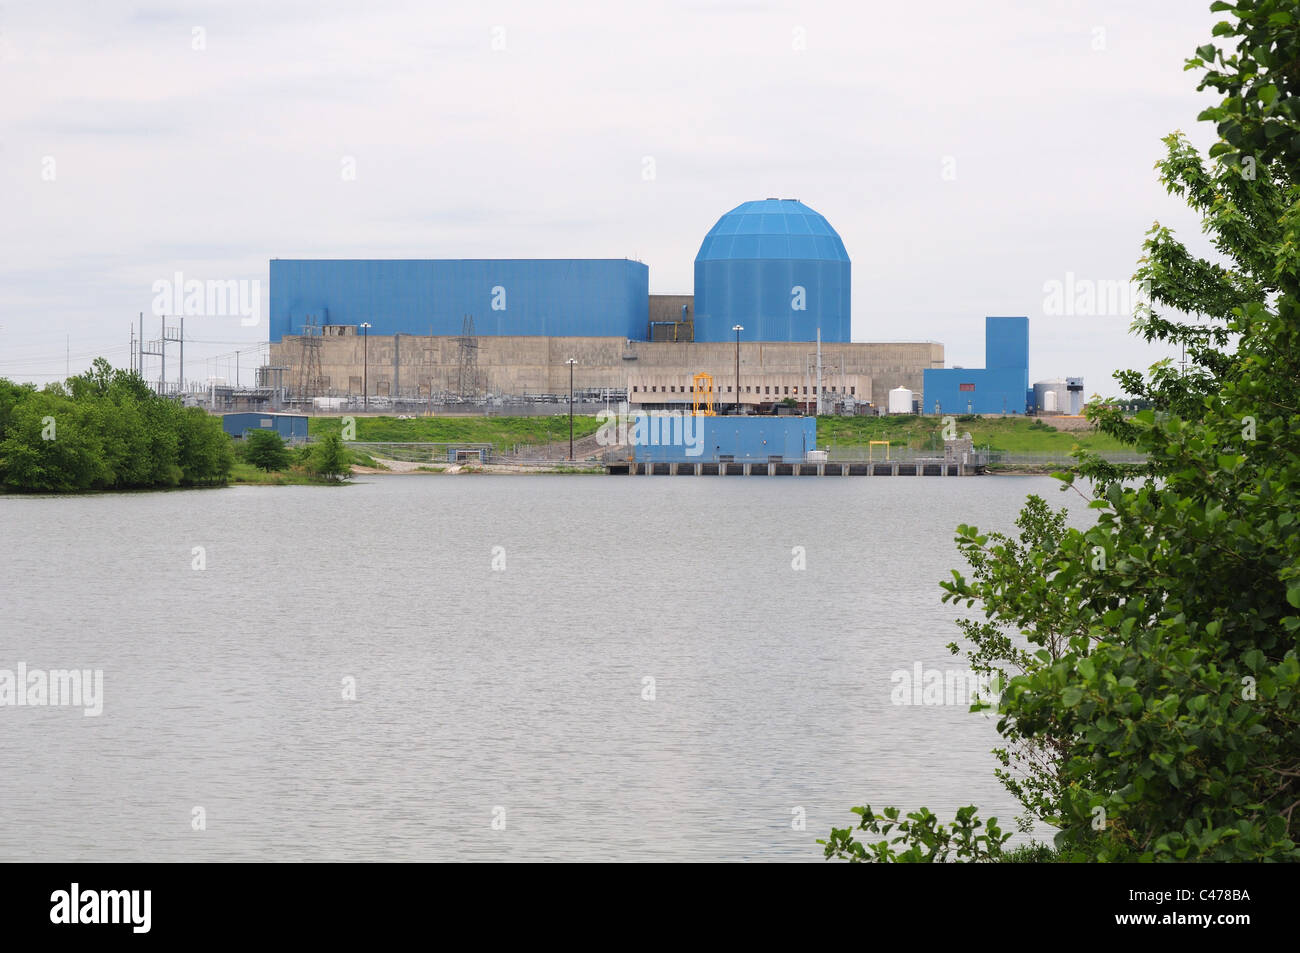 The Clinton Nuclear Power Plant near Clinton, Illinois USA owned by the Exelon corporation. - Stock Image